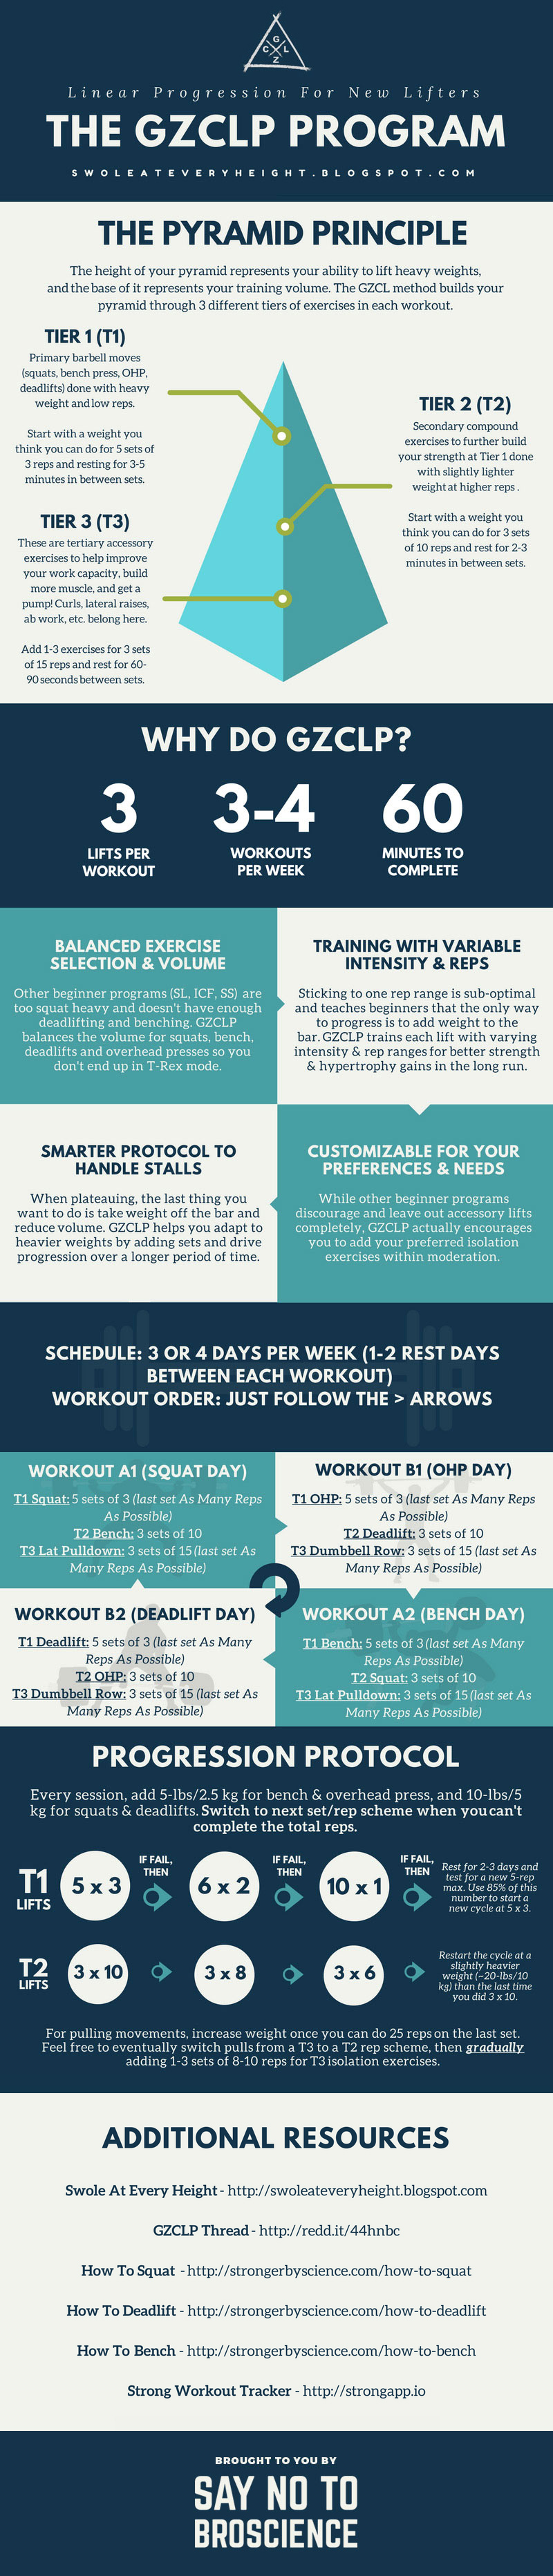 The GZCLP Program For Beginners (Infographic) | Say No To